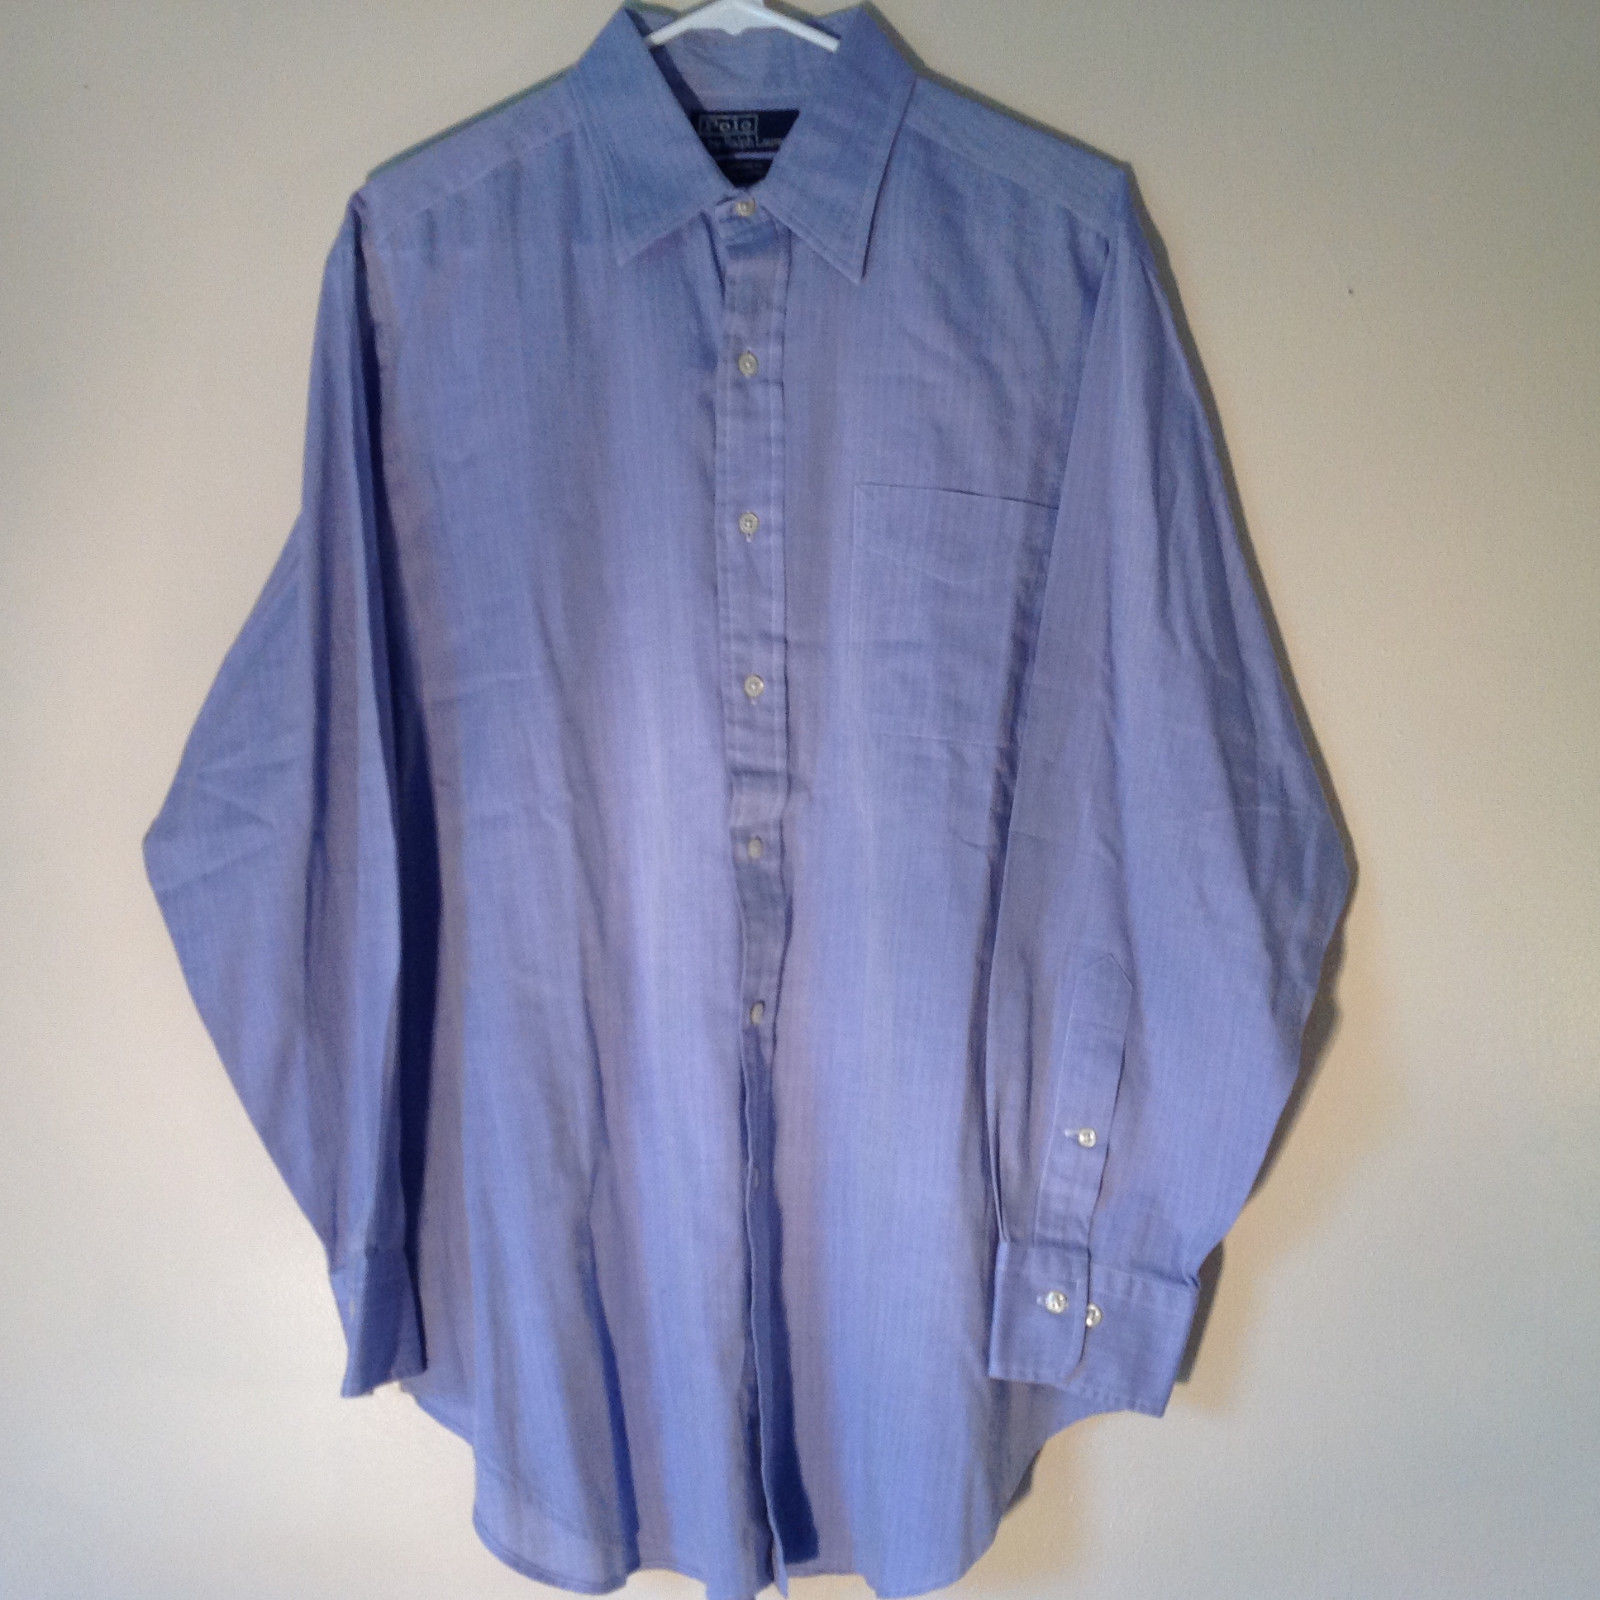 Polo Ralph Lauren Long Sleeve Button Down Light Purple Shirt Size 32 to 33